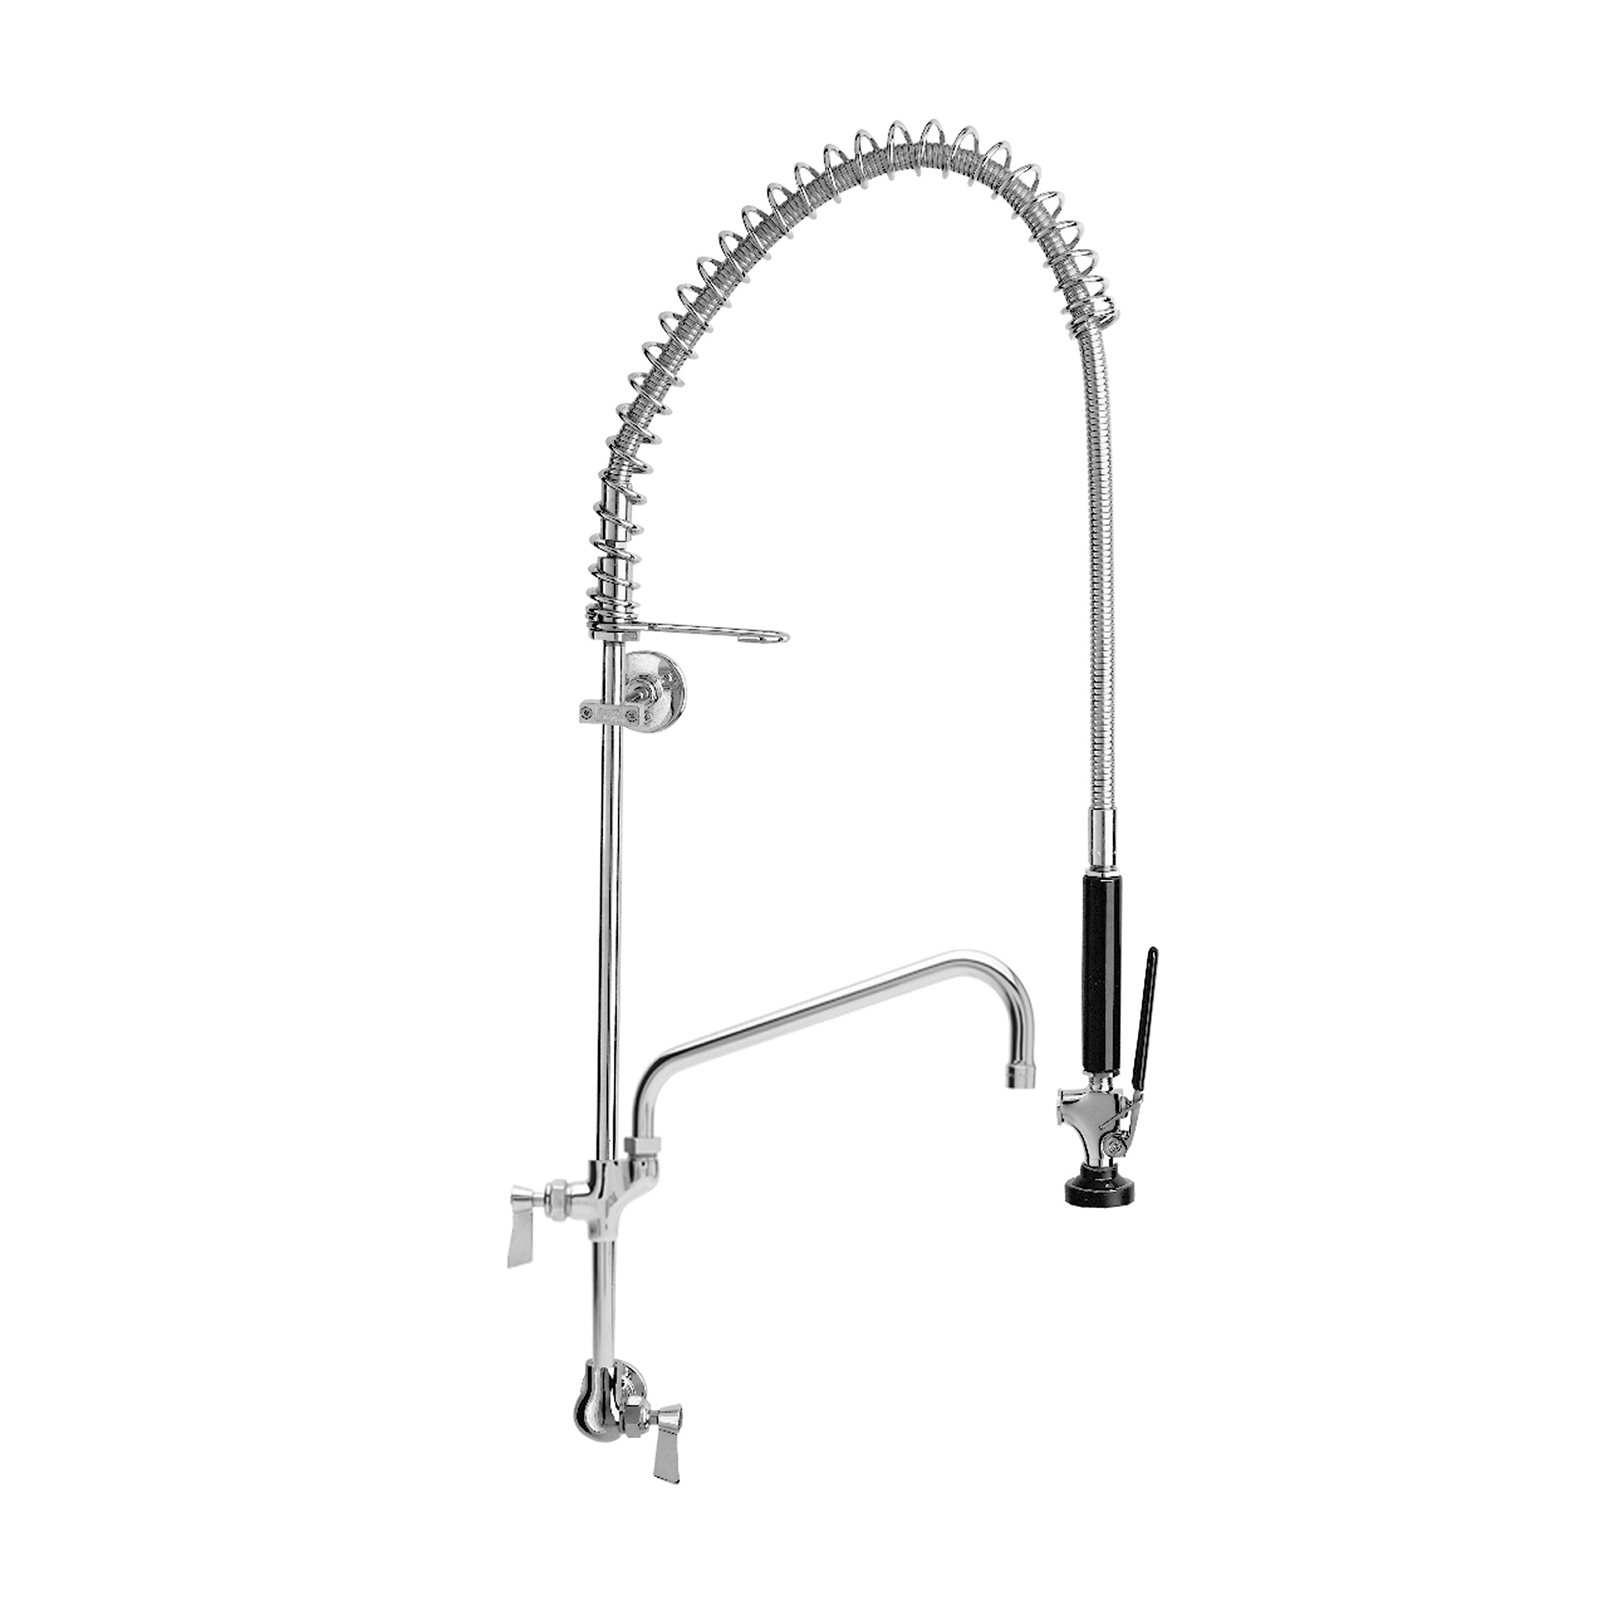 Fisher 34576 pre-rinse faucet assembly, with add on faucet